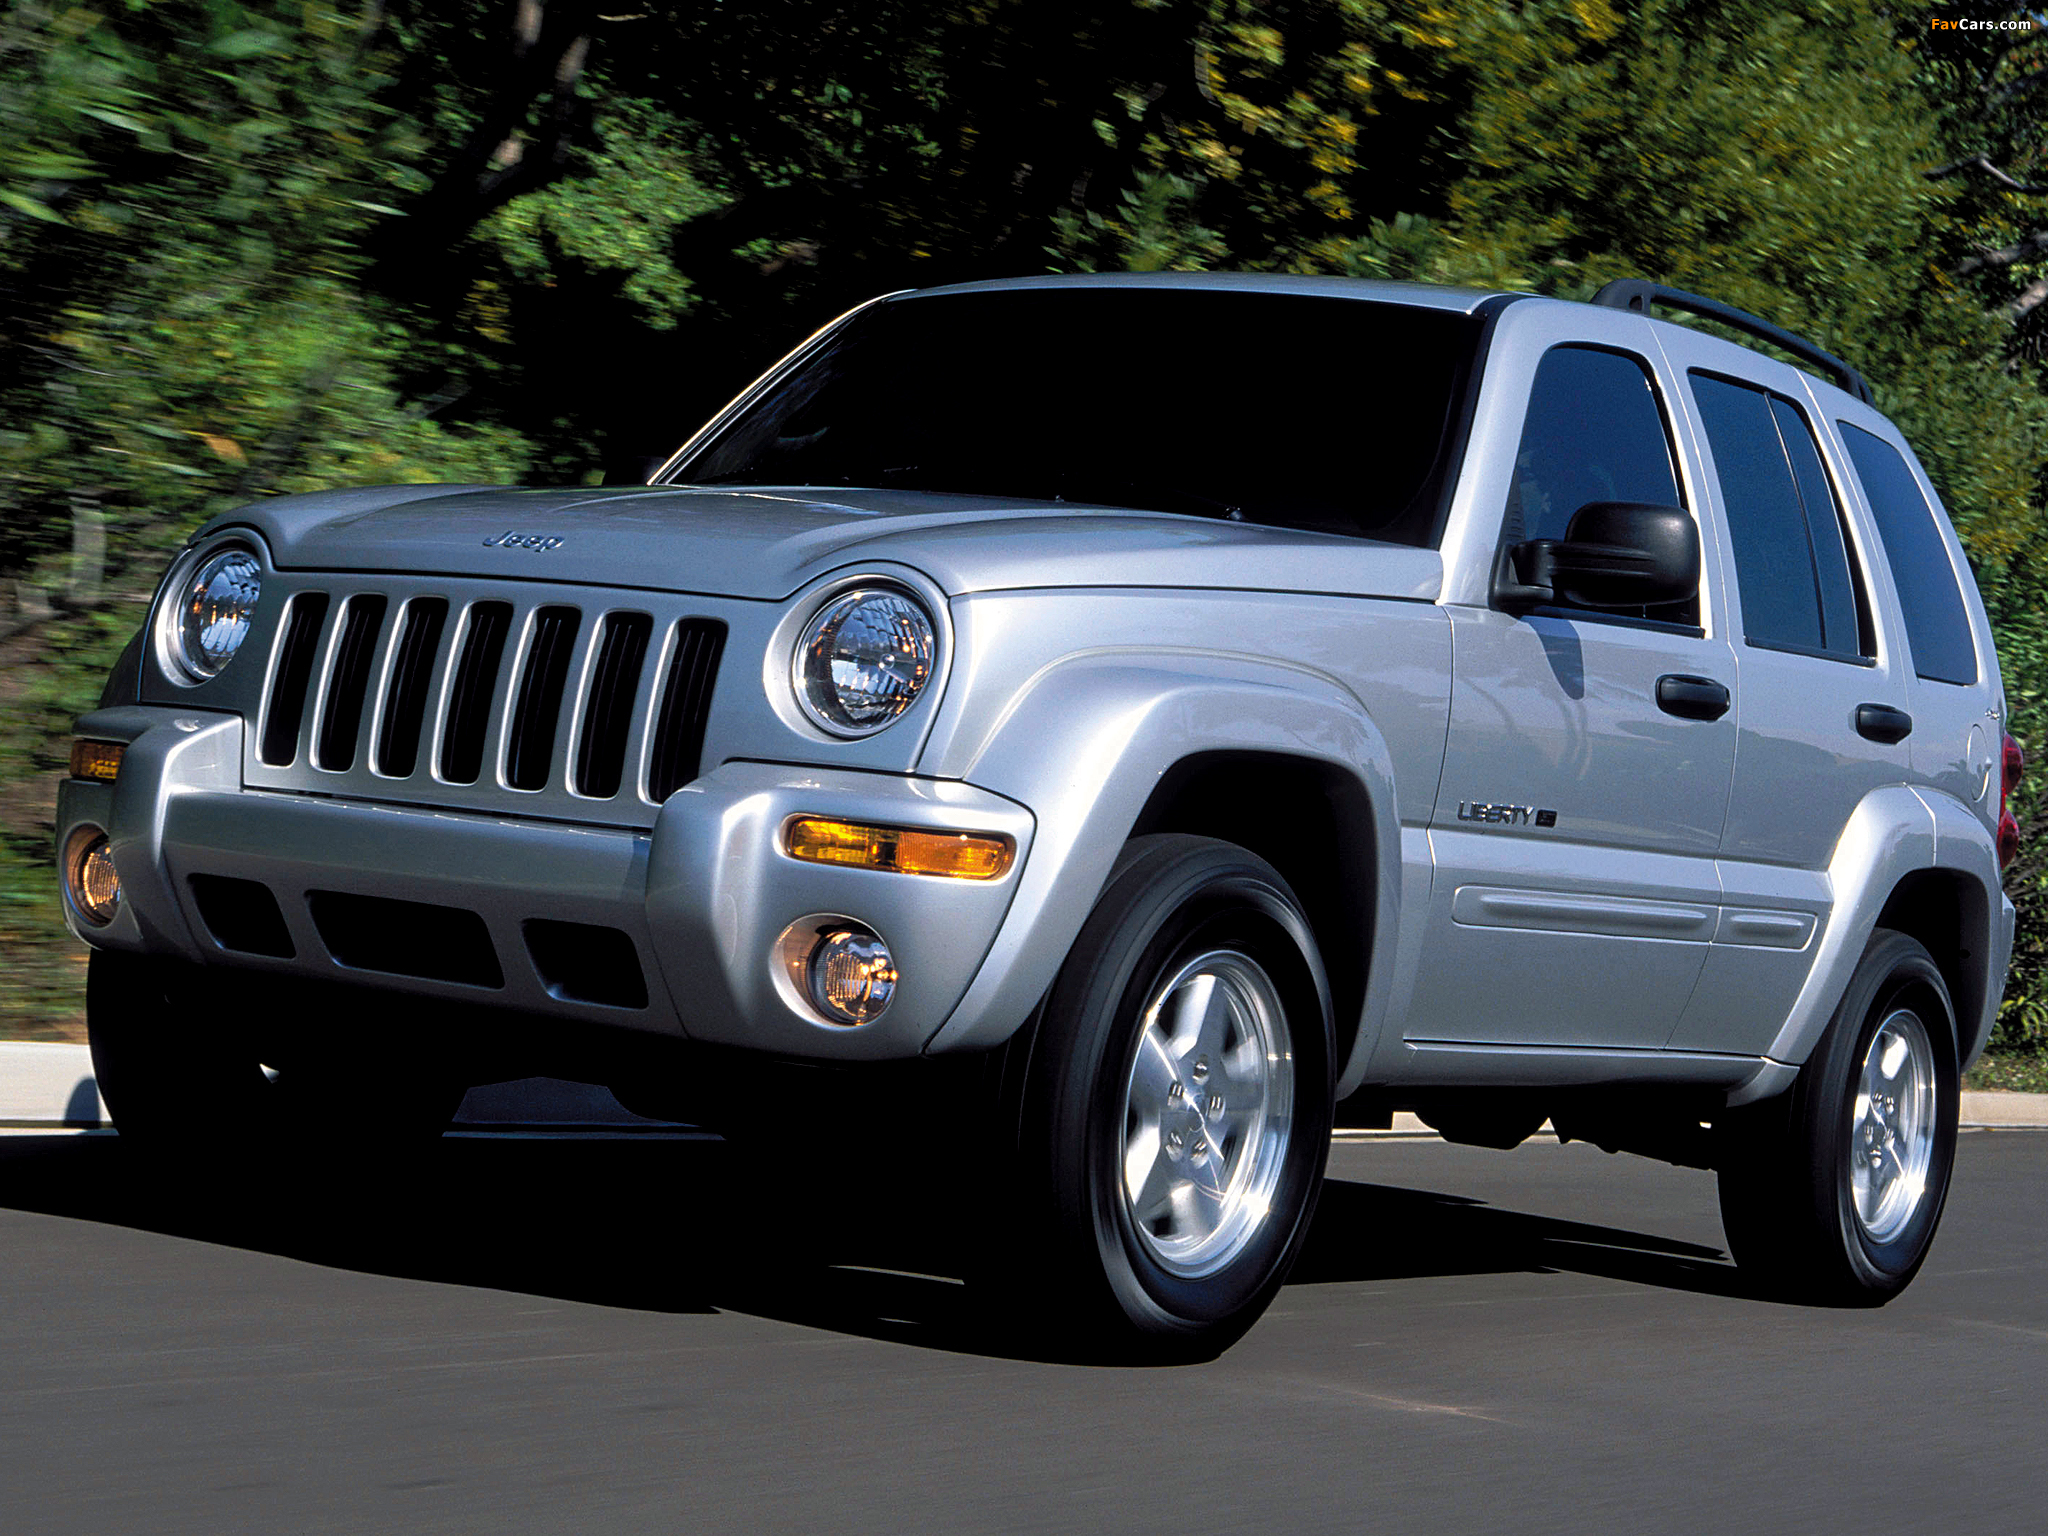 2002 jeep liberty limited edition mpg gov